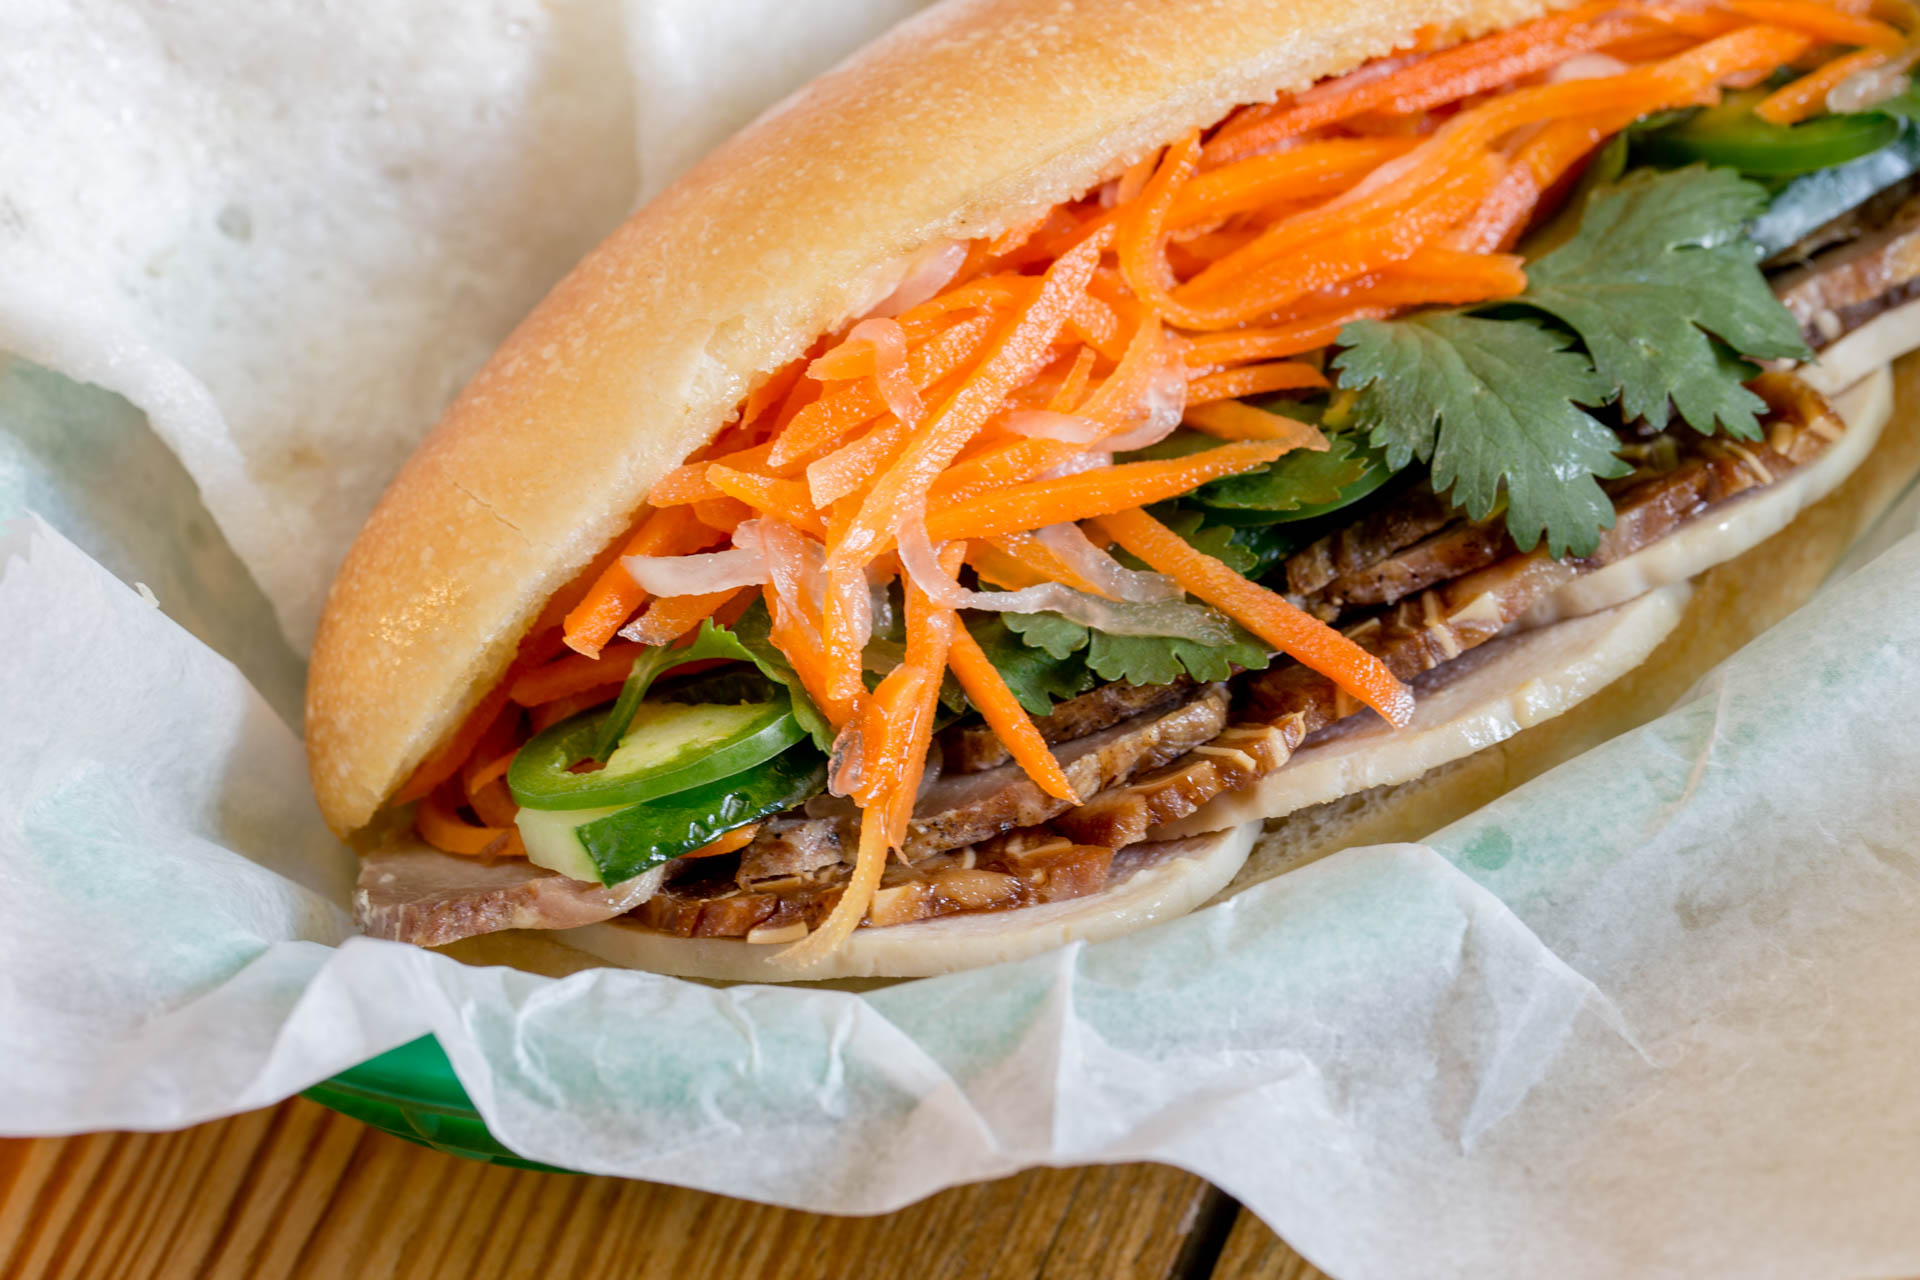 What to do with a Bahn Mi?